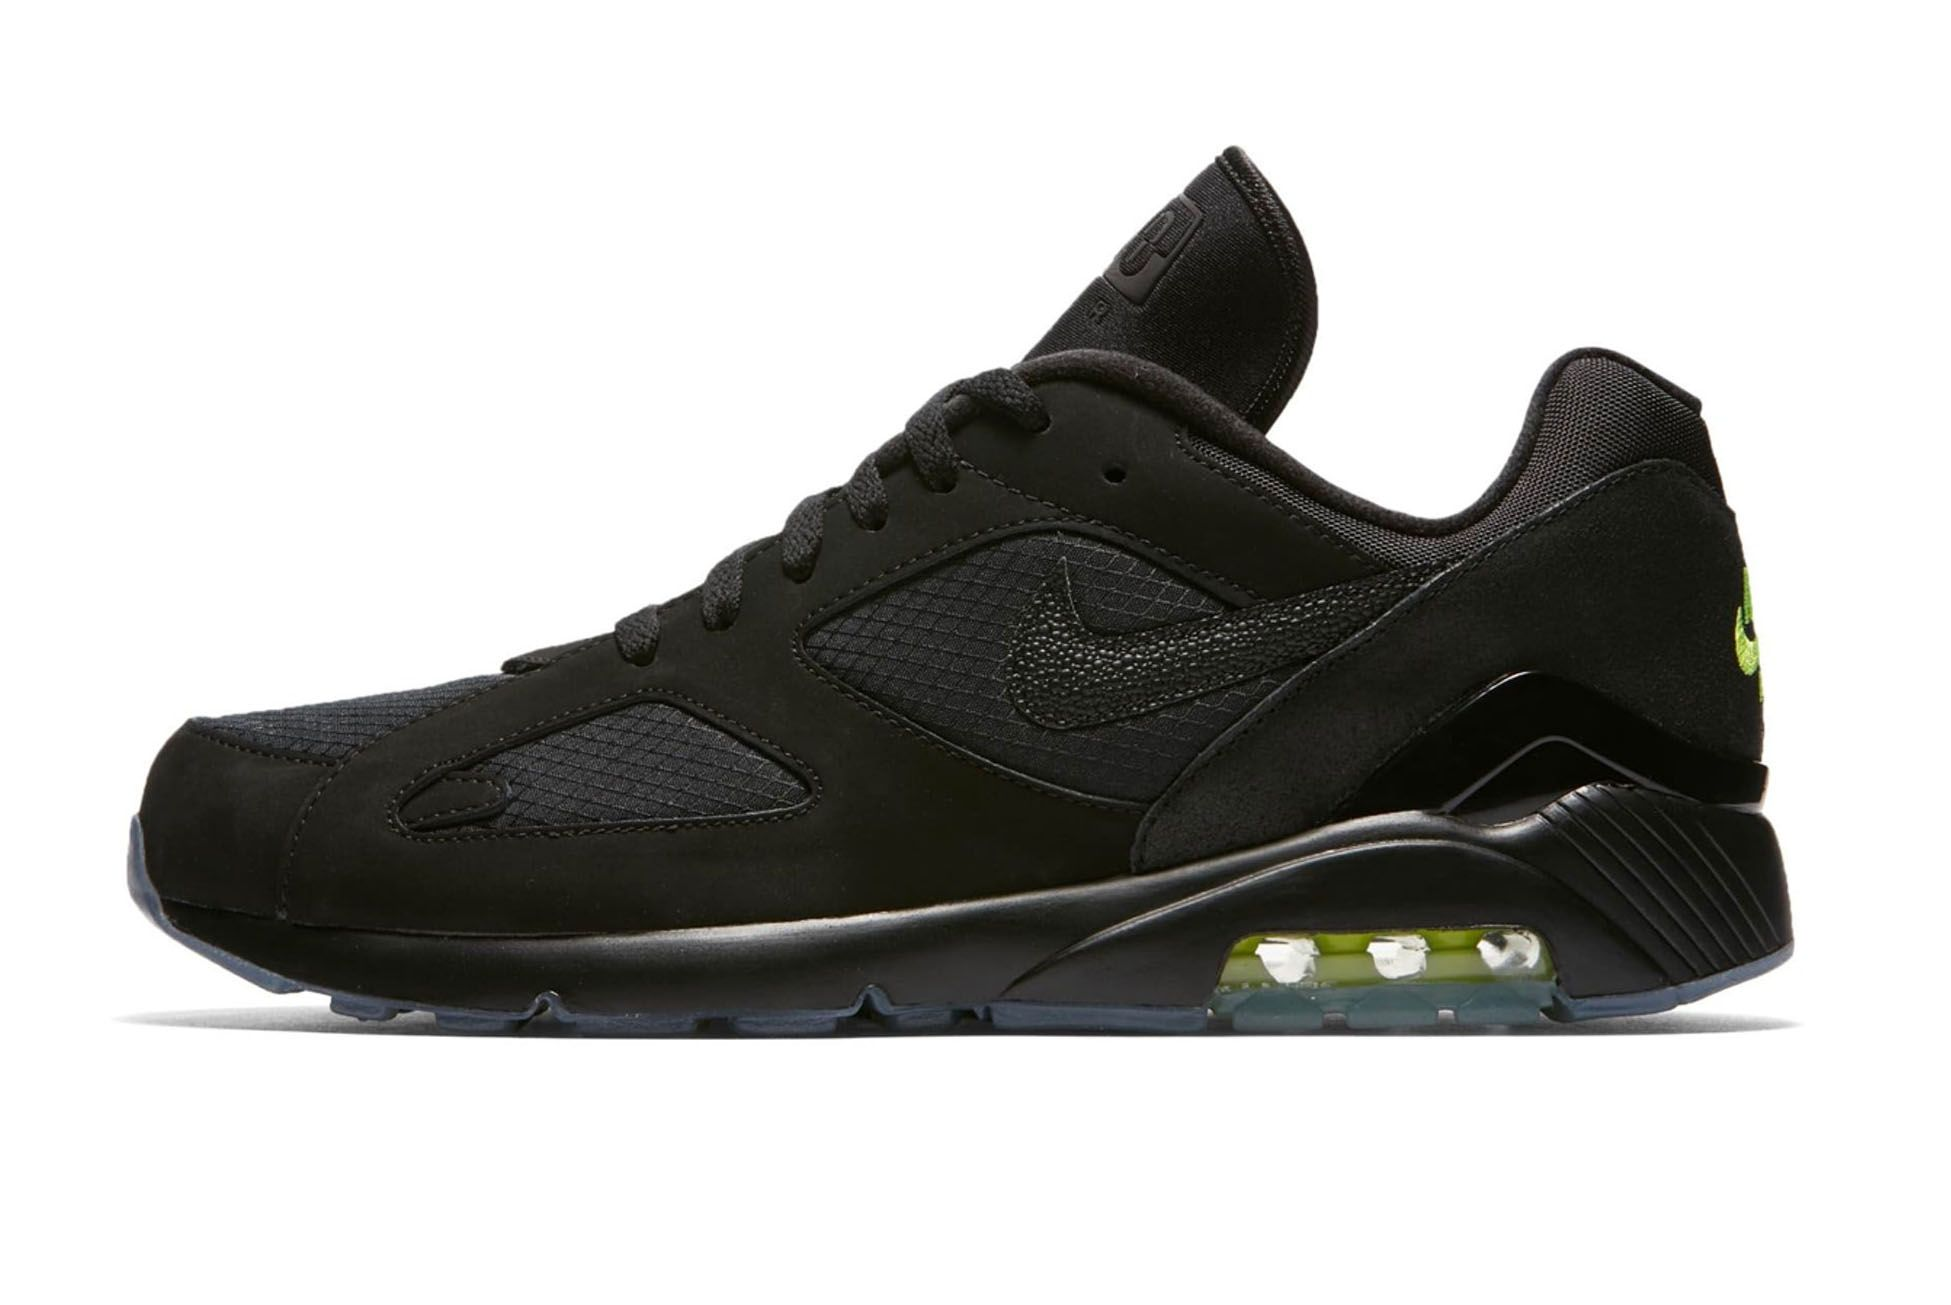 Nike Air Max 180 Black Volt First Look 001 Sneaker Freaker